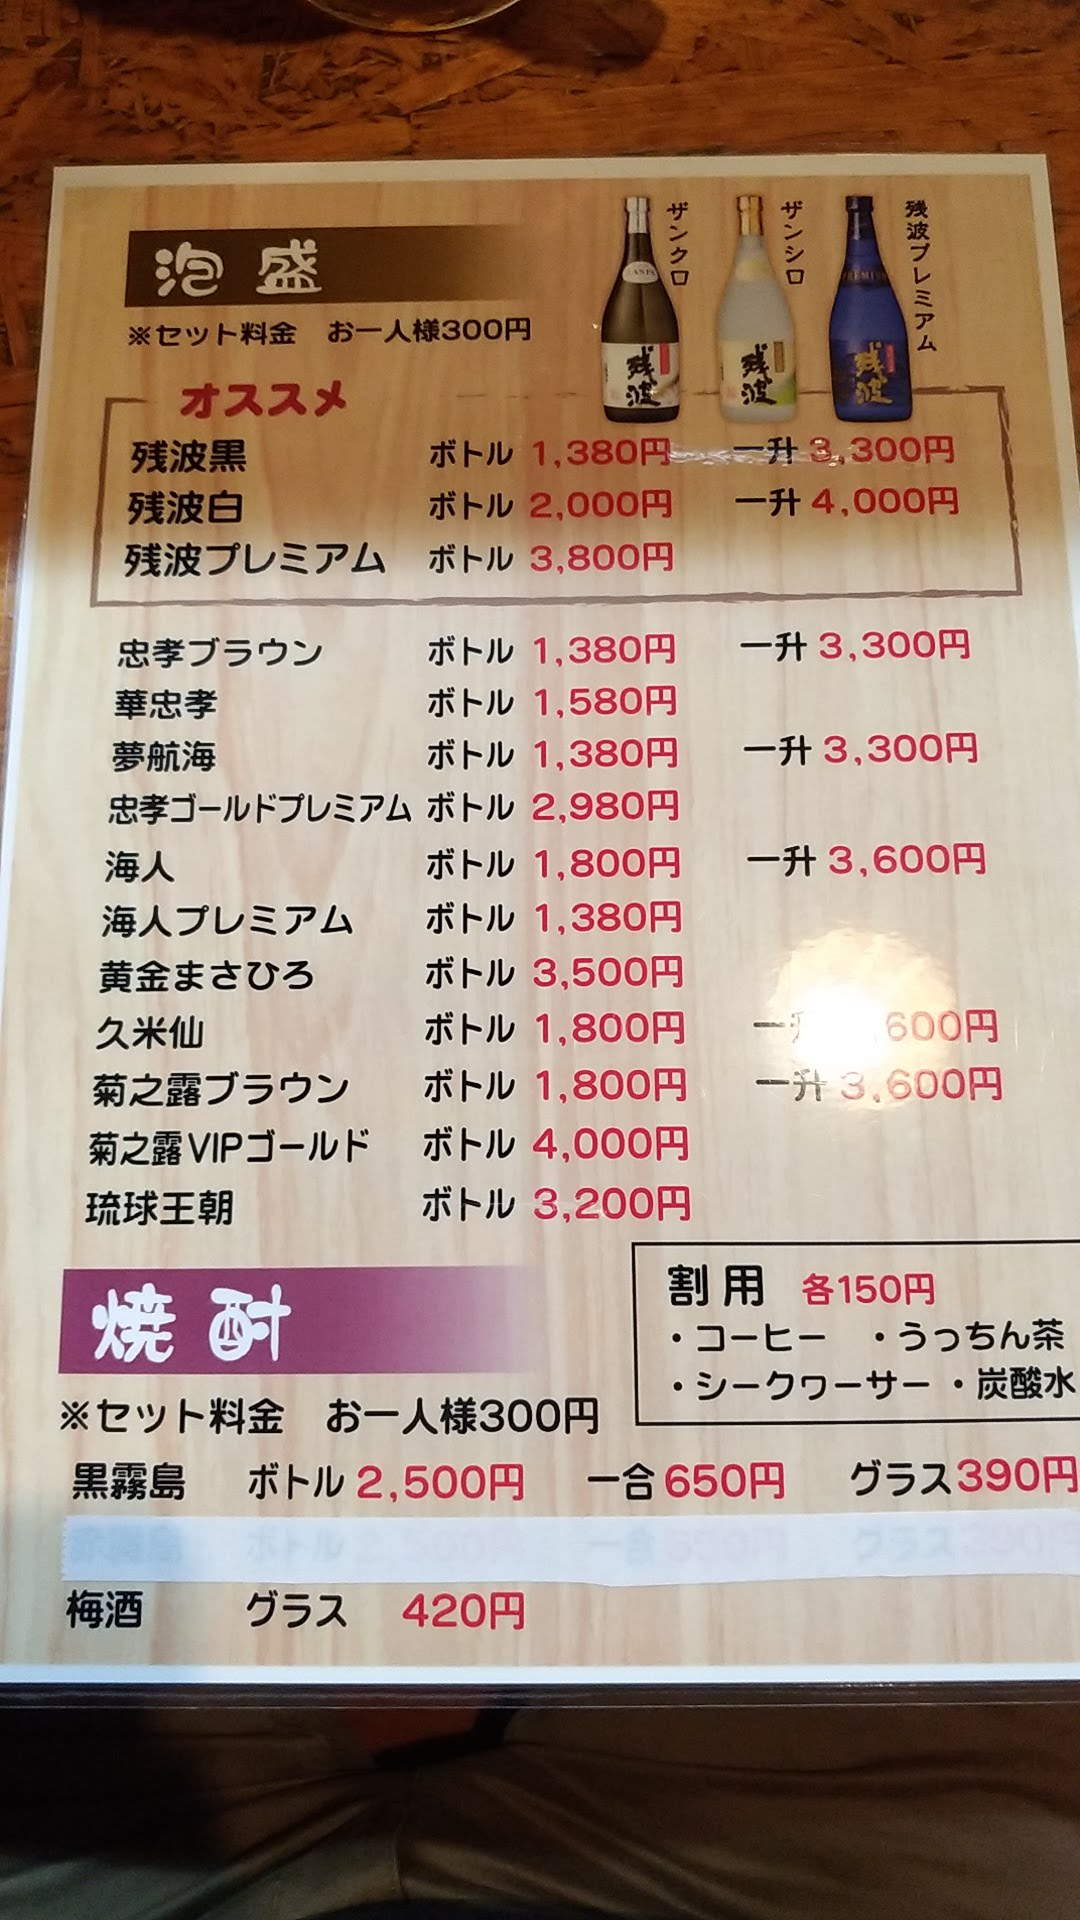 drink menu of seafood tavern Kaikyou 1